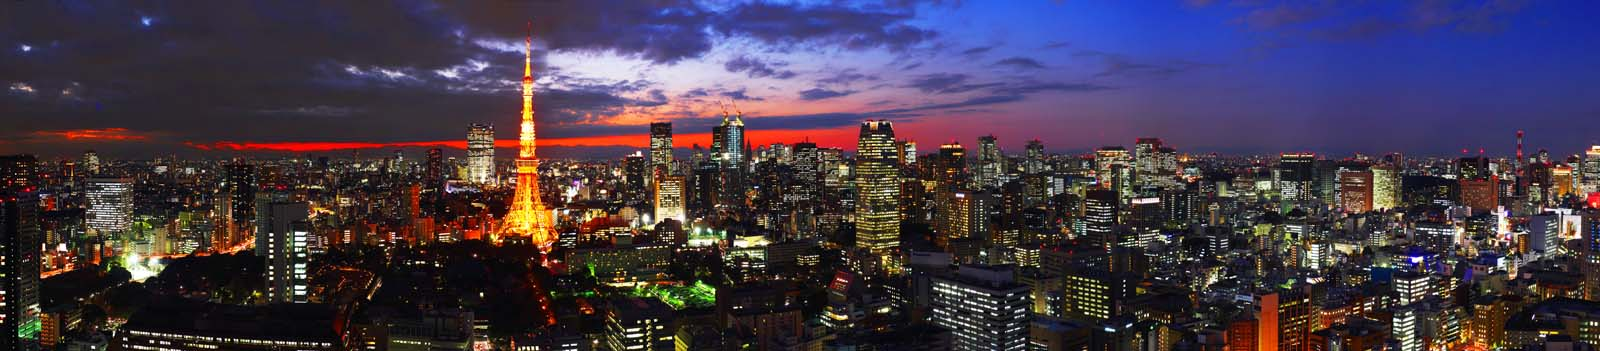 photo,material,free,landscape,picture,stock photo,Creative Commons,Tokyo night view, building, The downtown area, Tokyo Tower, sunset